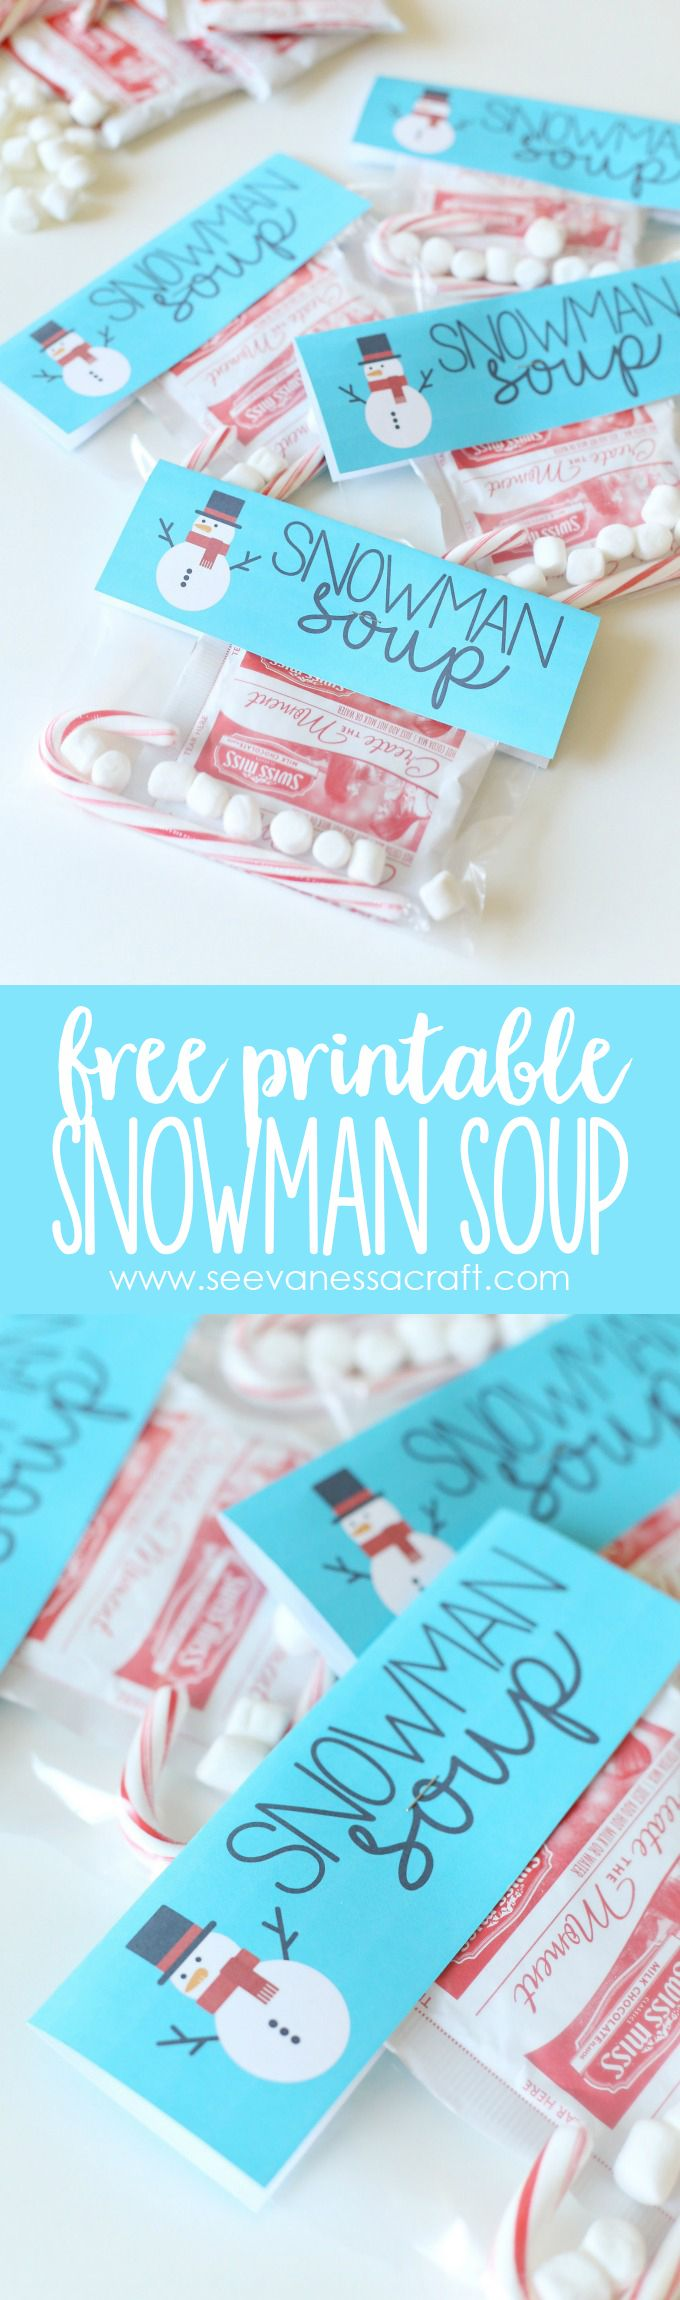 Free Printable Snowman Soup Bag Topper Printable - fun gift idea for friends, neighbors or teachers!